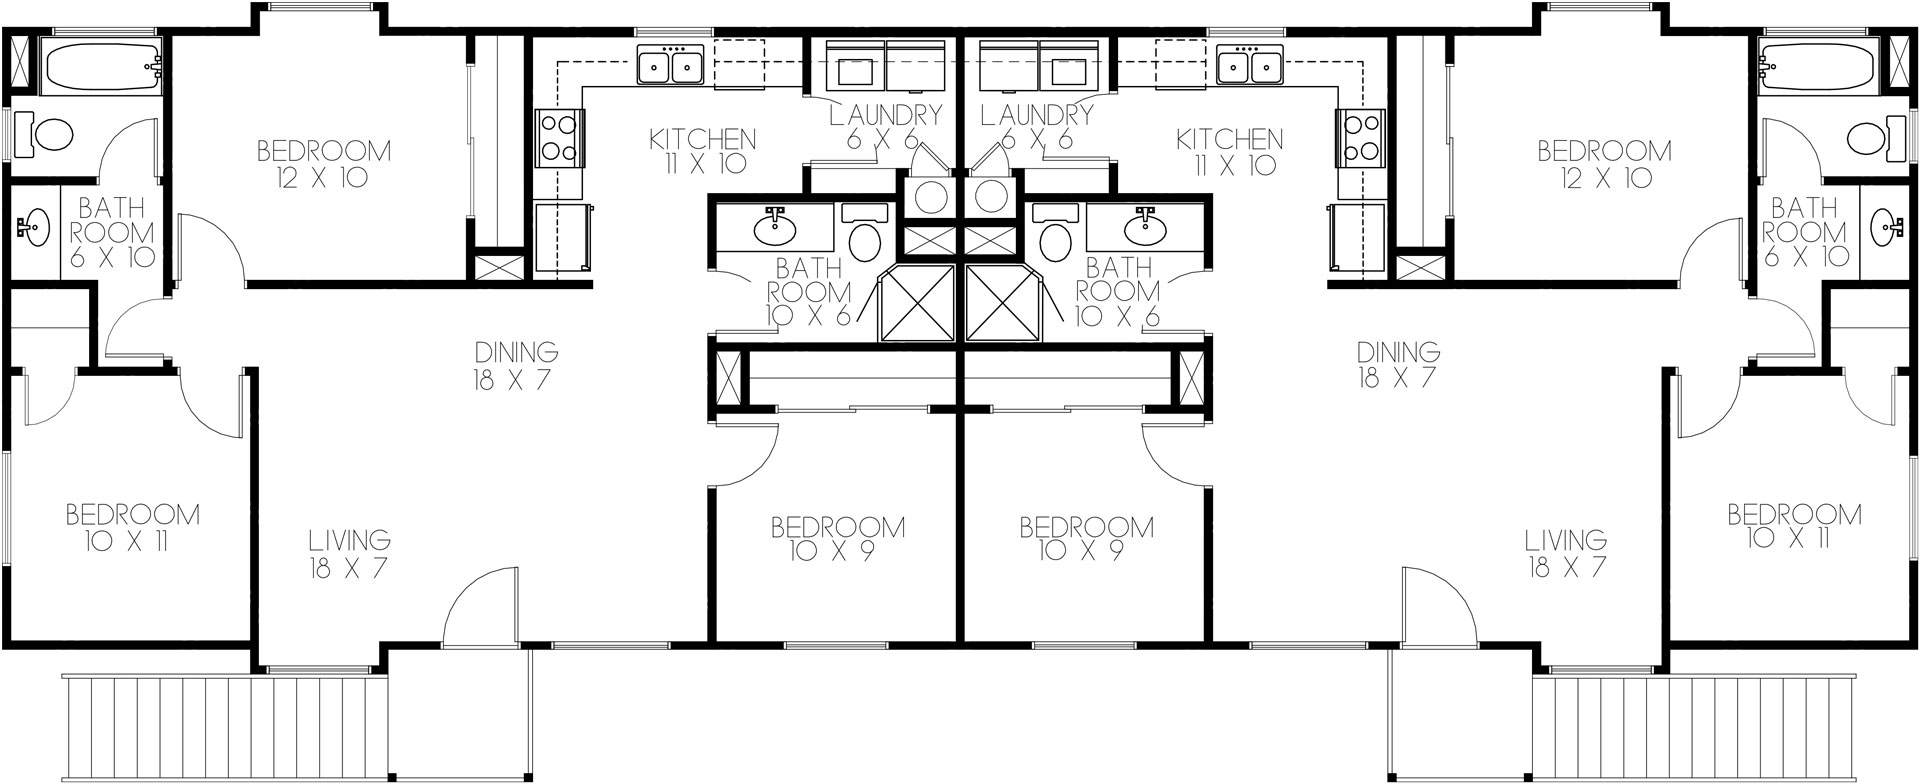 M32 972 for Ready house plans